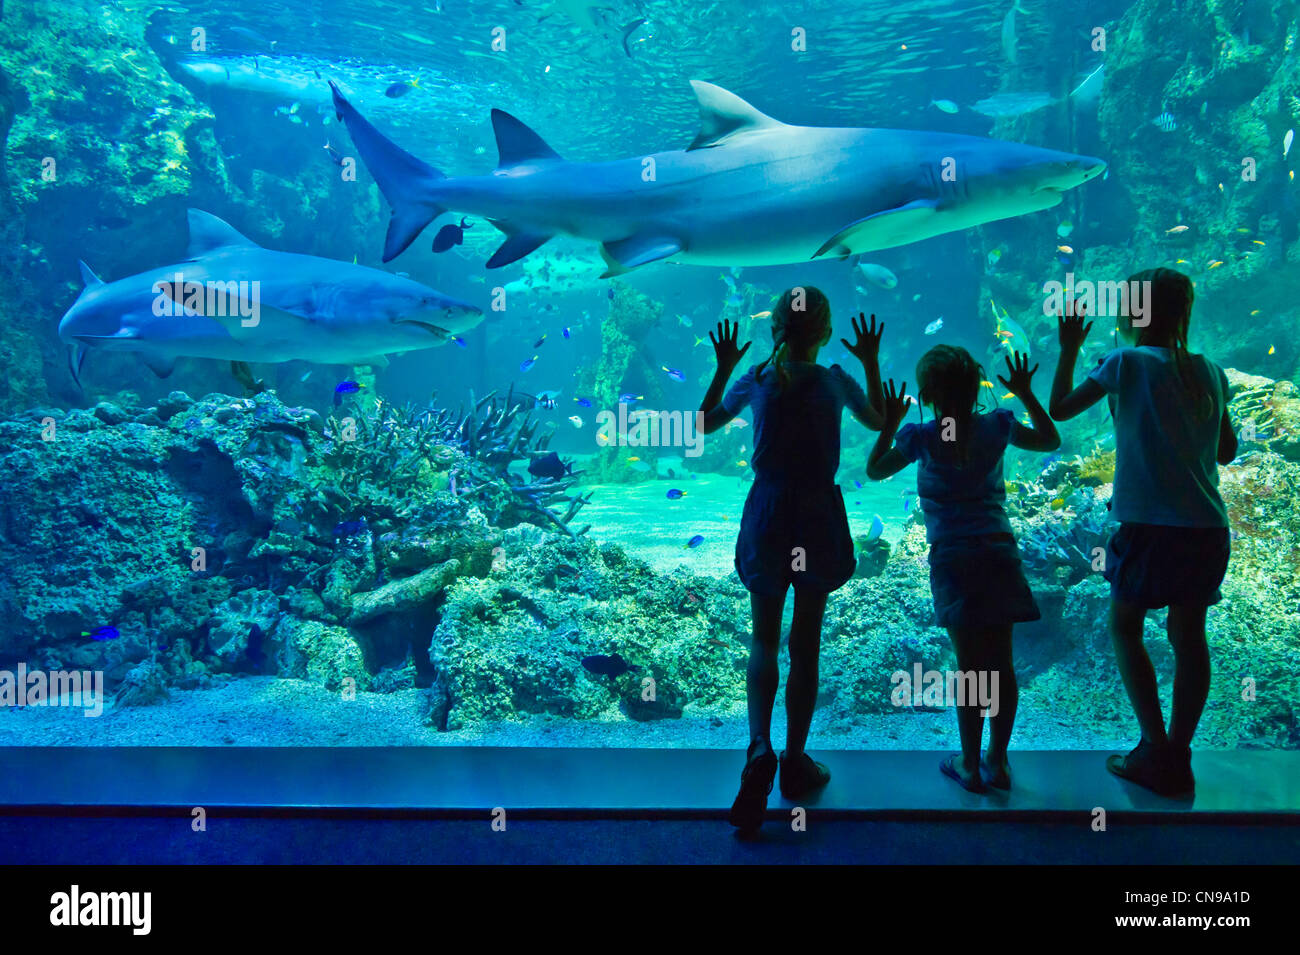 Australia, New South Wales, Sydney, Sydney Aquarium, visitors looking at the sharks (Selachimorpha) - Stock Image